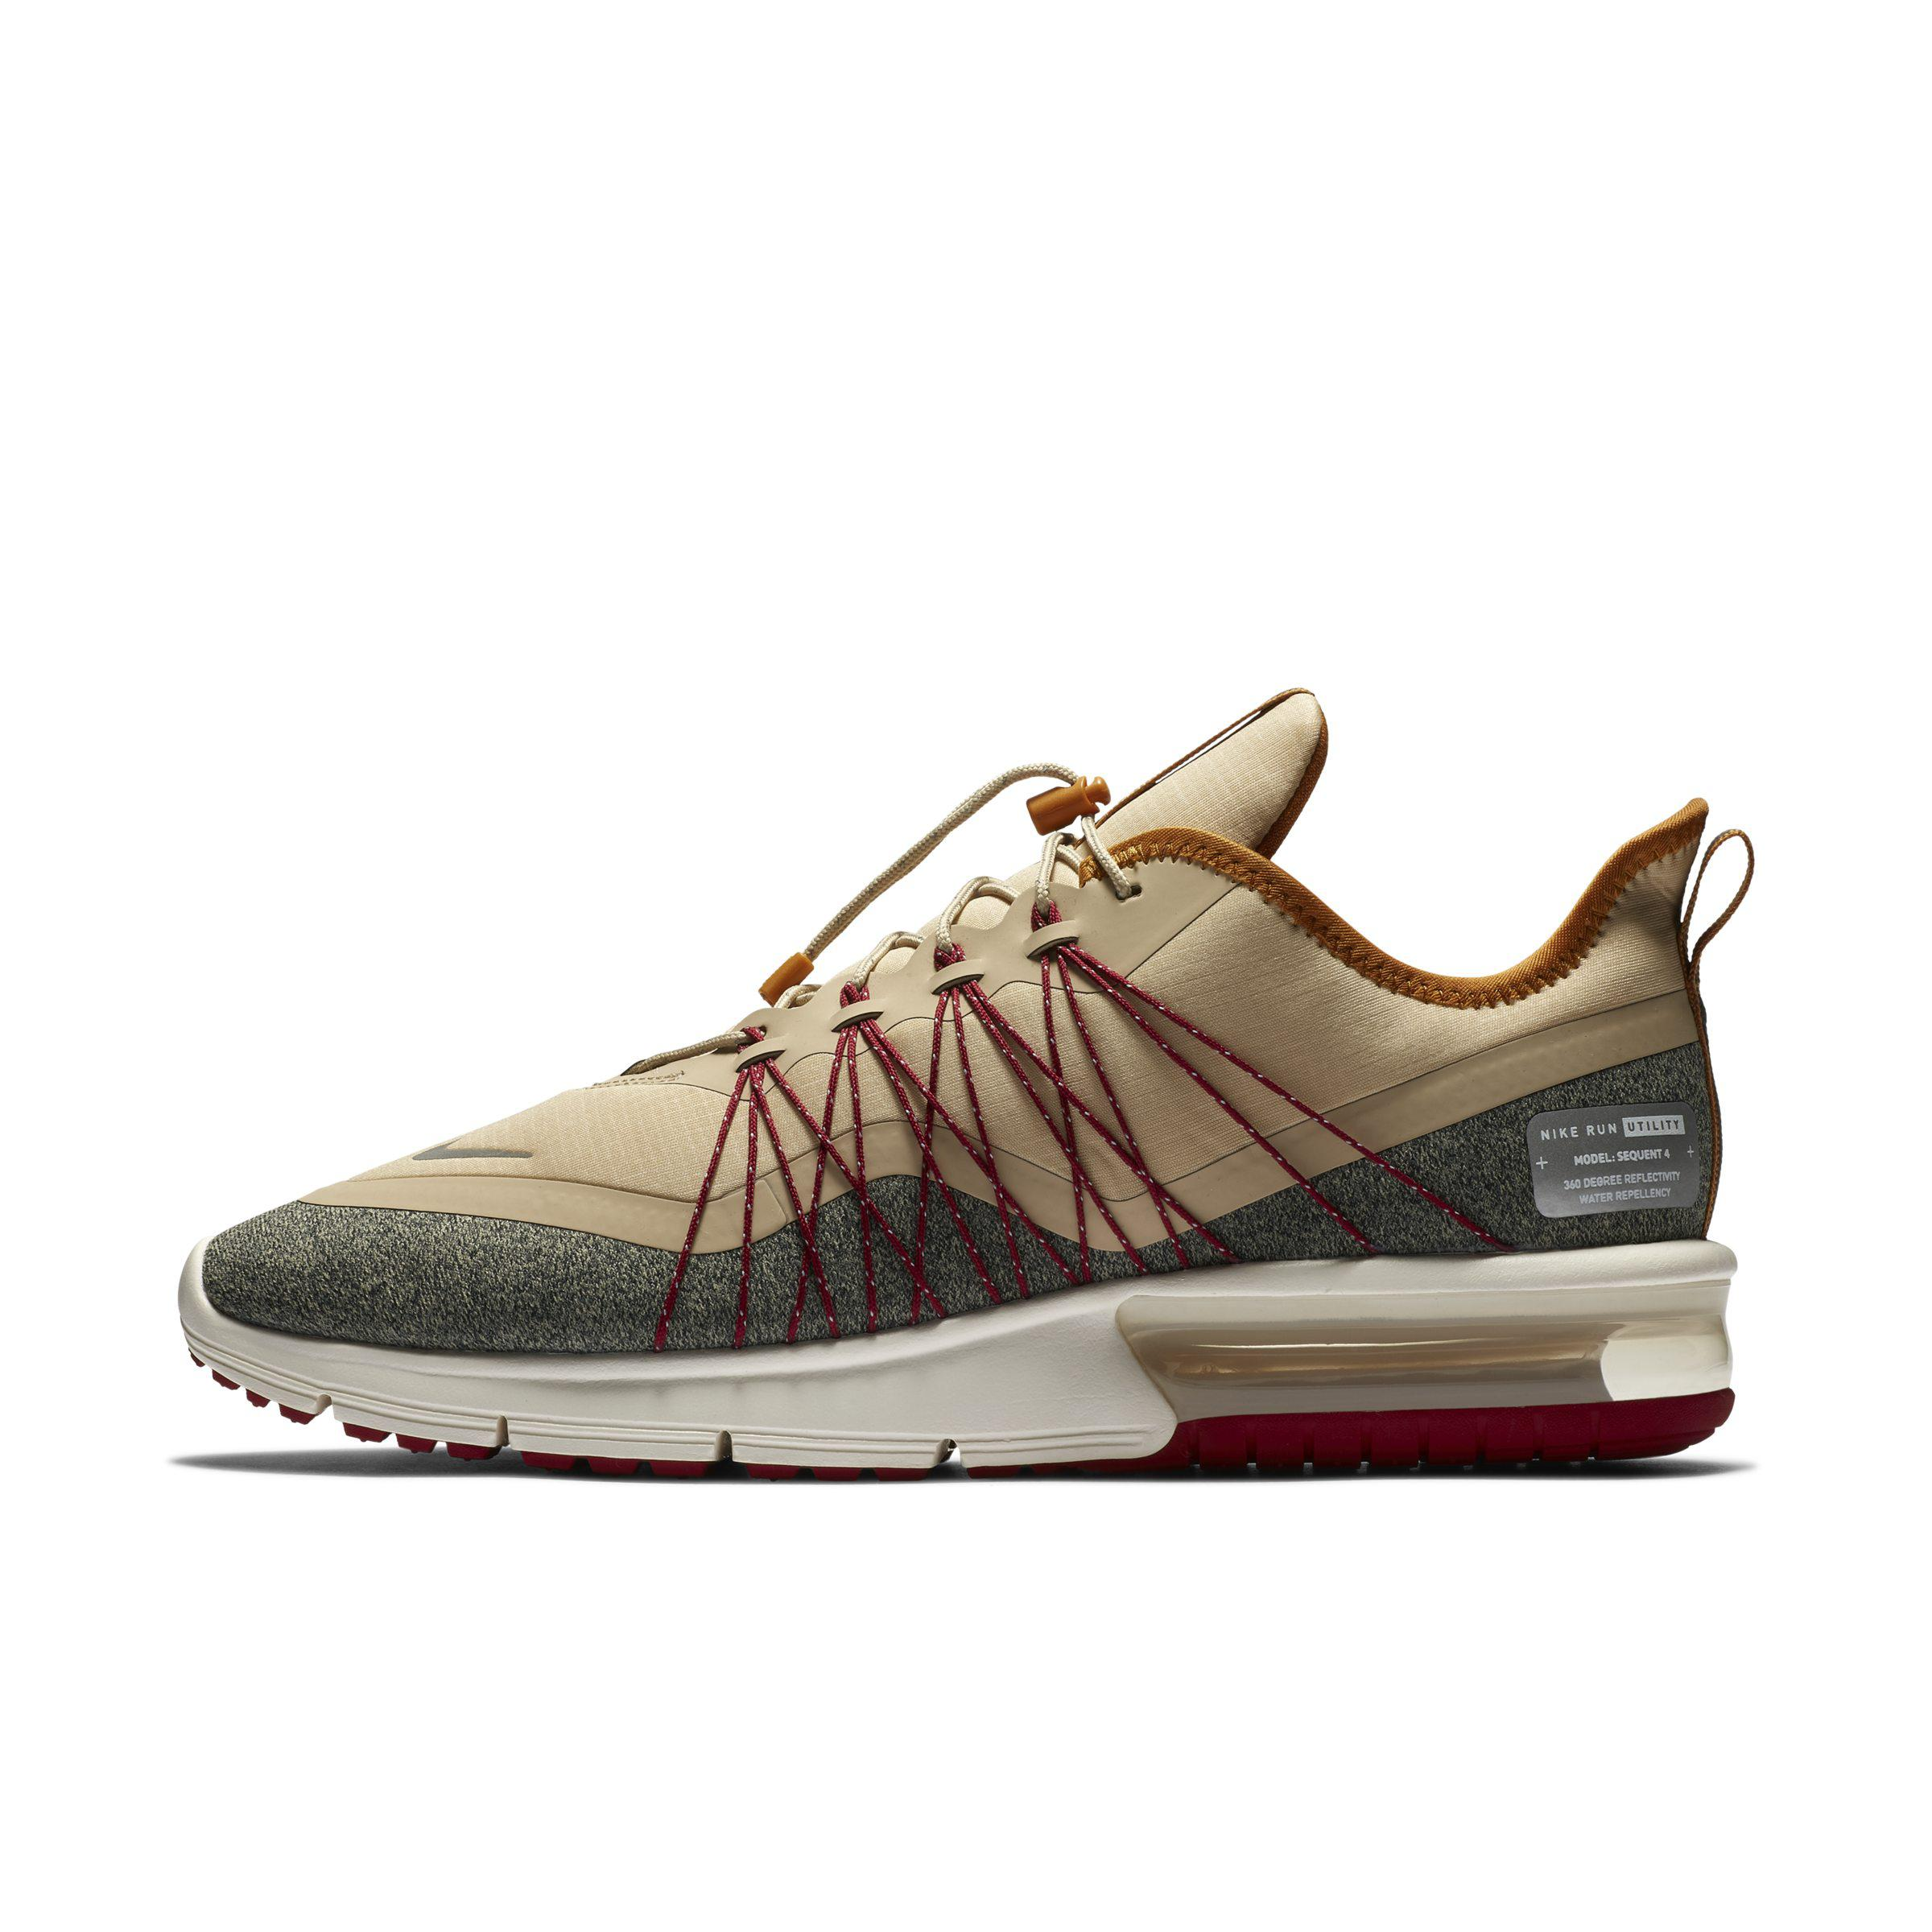 finest selection f4e1f 648e6 Nike Air Max Sequent 4 Shield Shoe in Brown for Men - Lyst